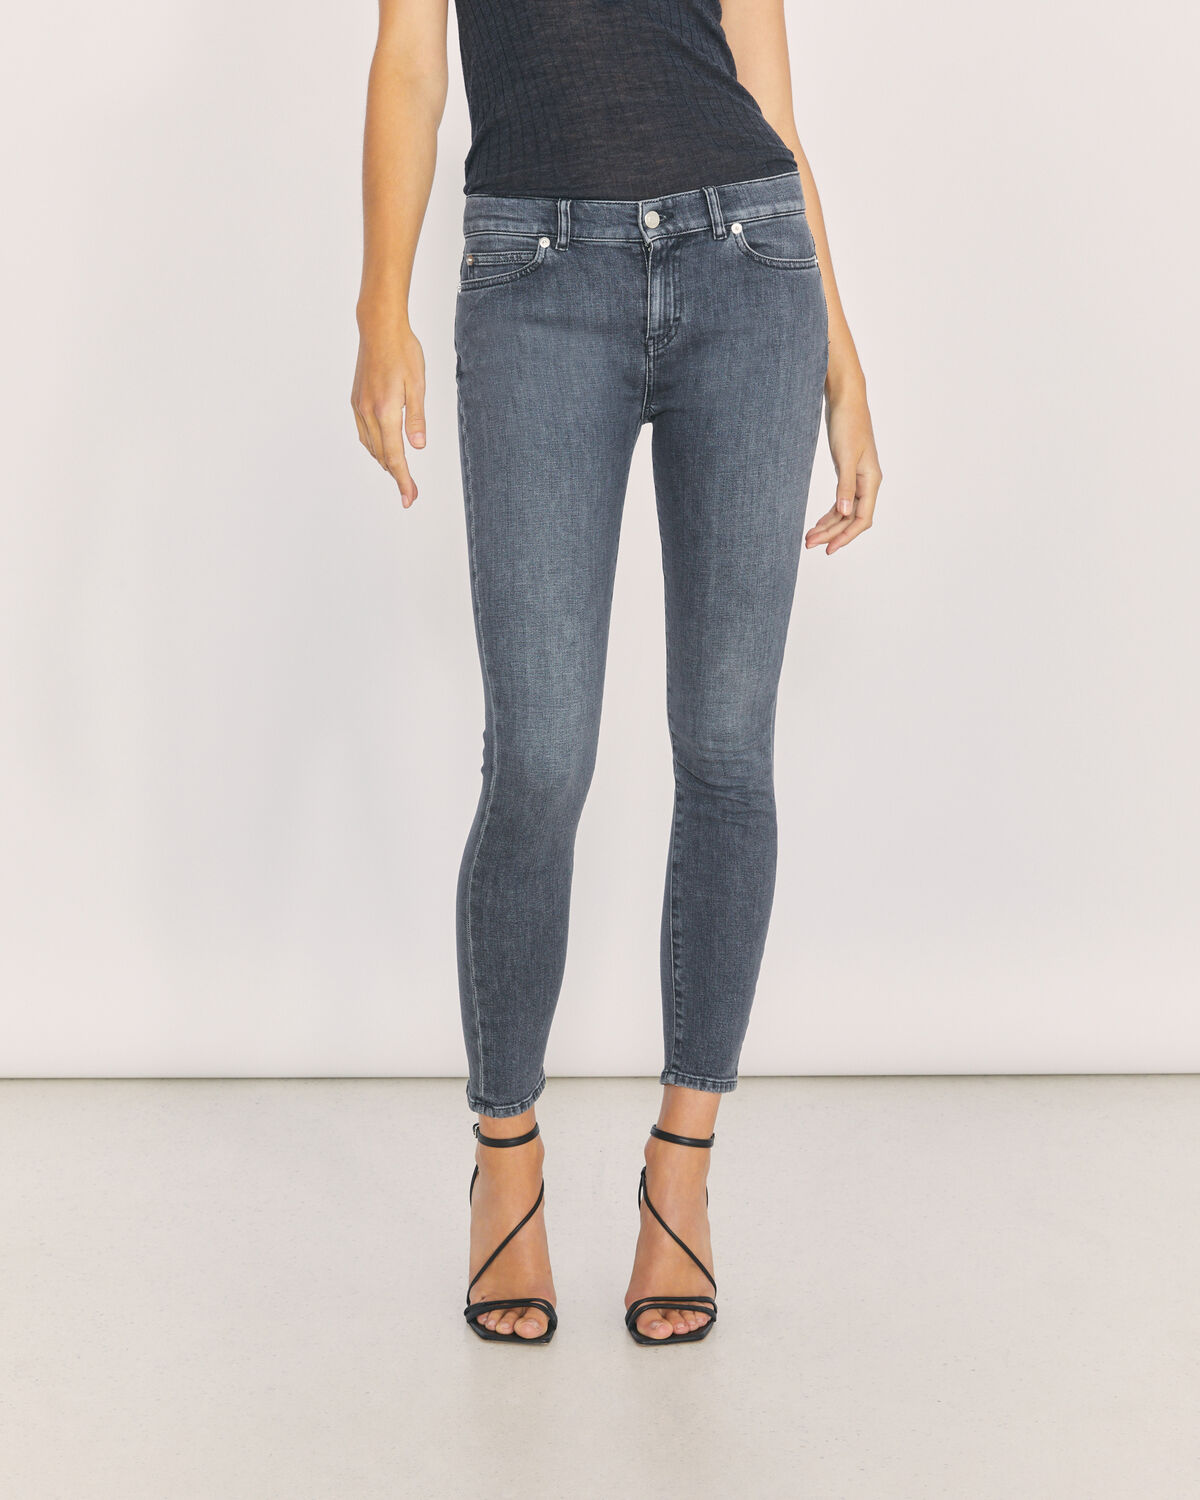 IRO - TOBER GREY MID RISE SKINNY JEANS GREY WASHED